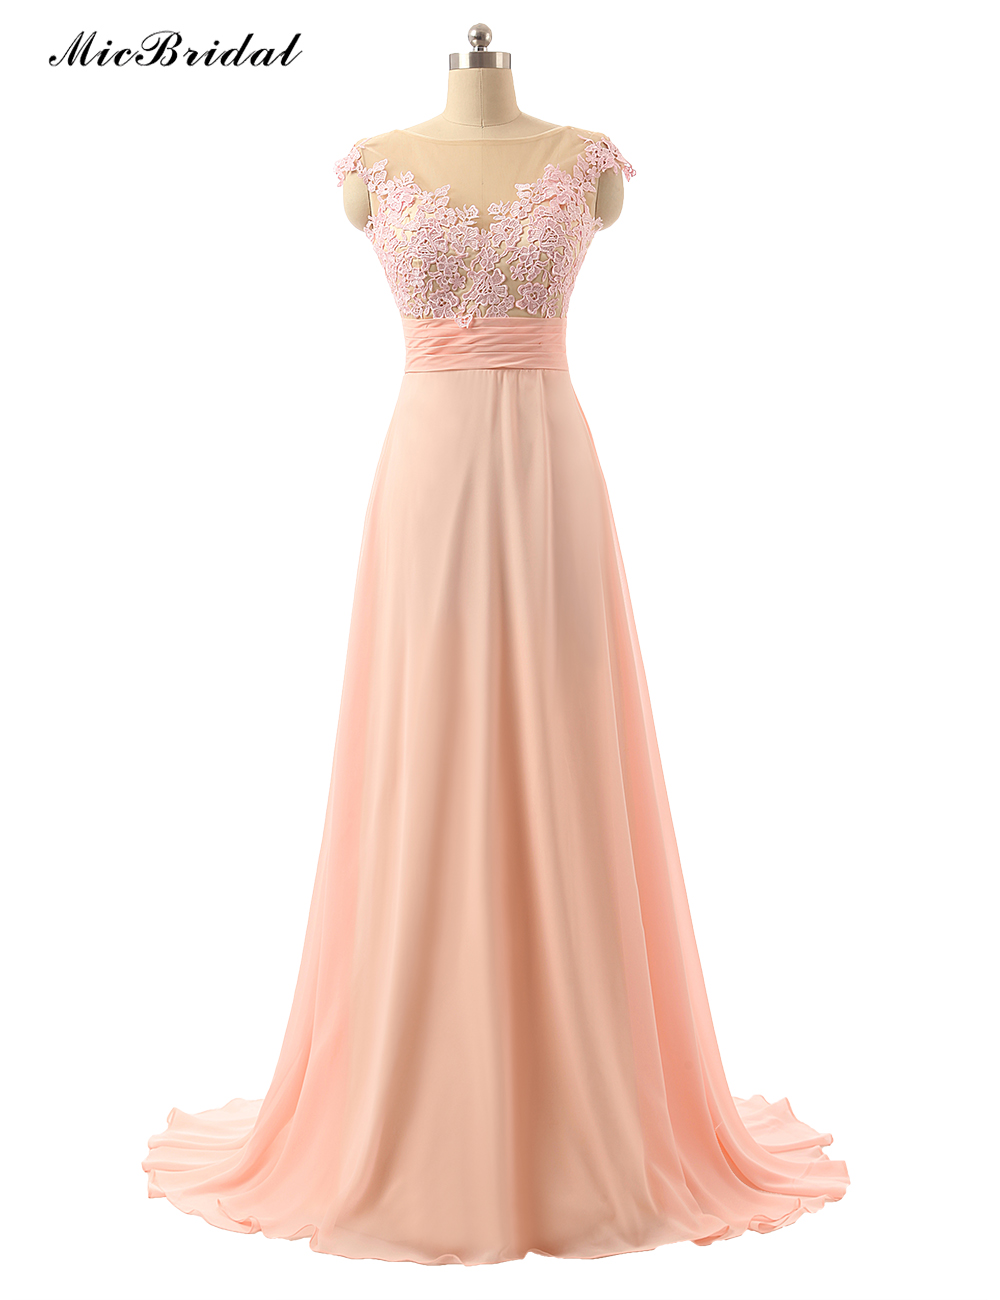 Micbridal cheap a line blush bridesmaid dress 2016 long for Cheap wedding guest dresses